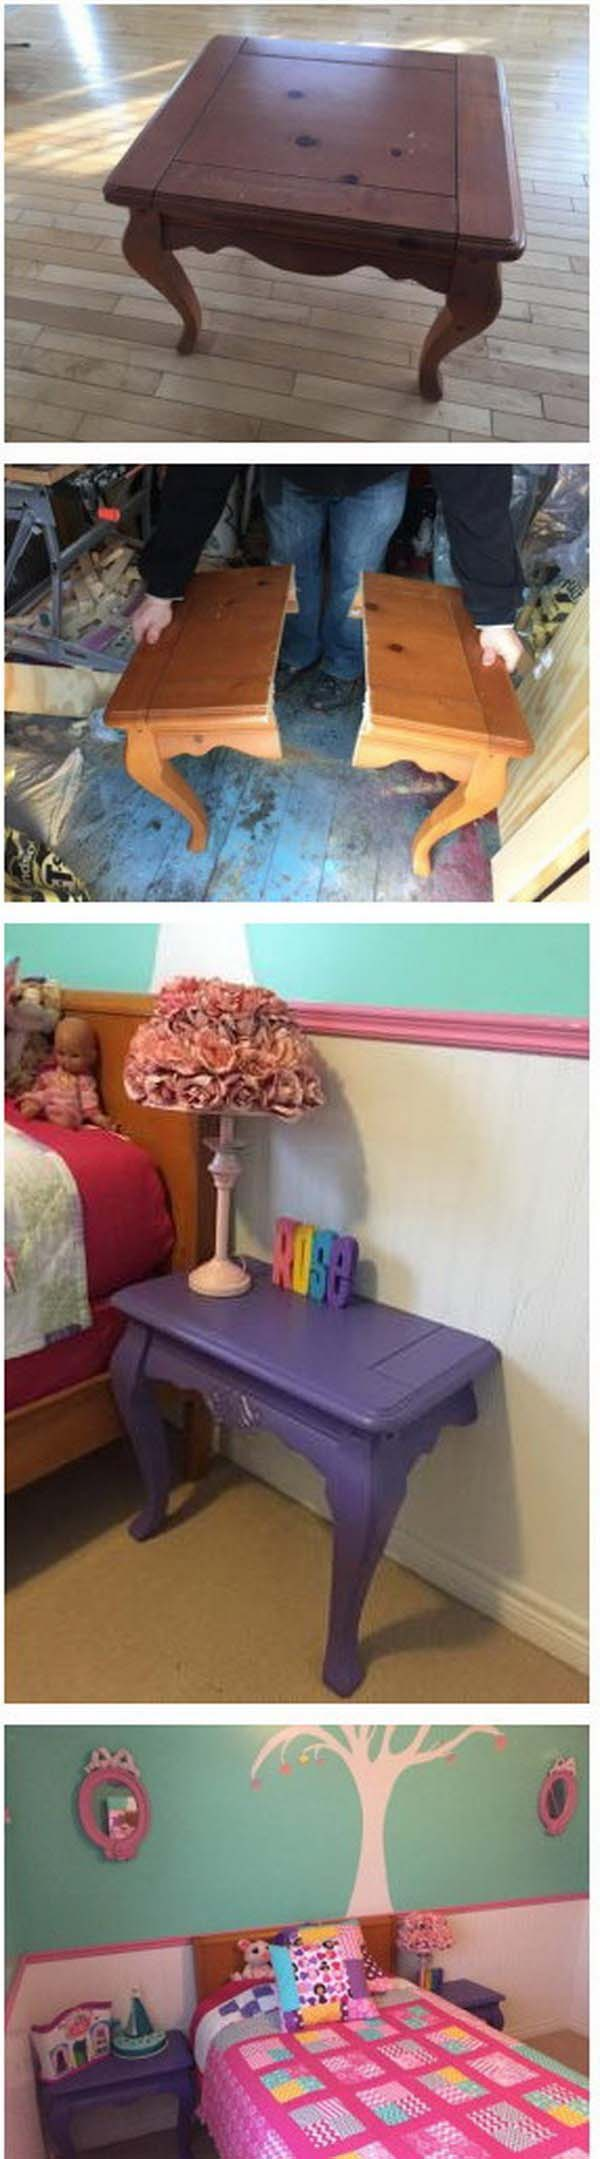 DIY Nightstands Makeover #diy #furniture #makeover #repurpose #decorhomeideas